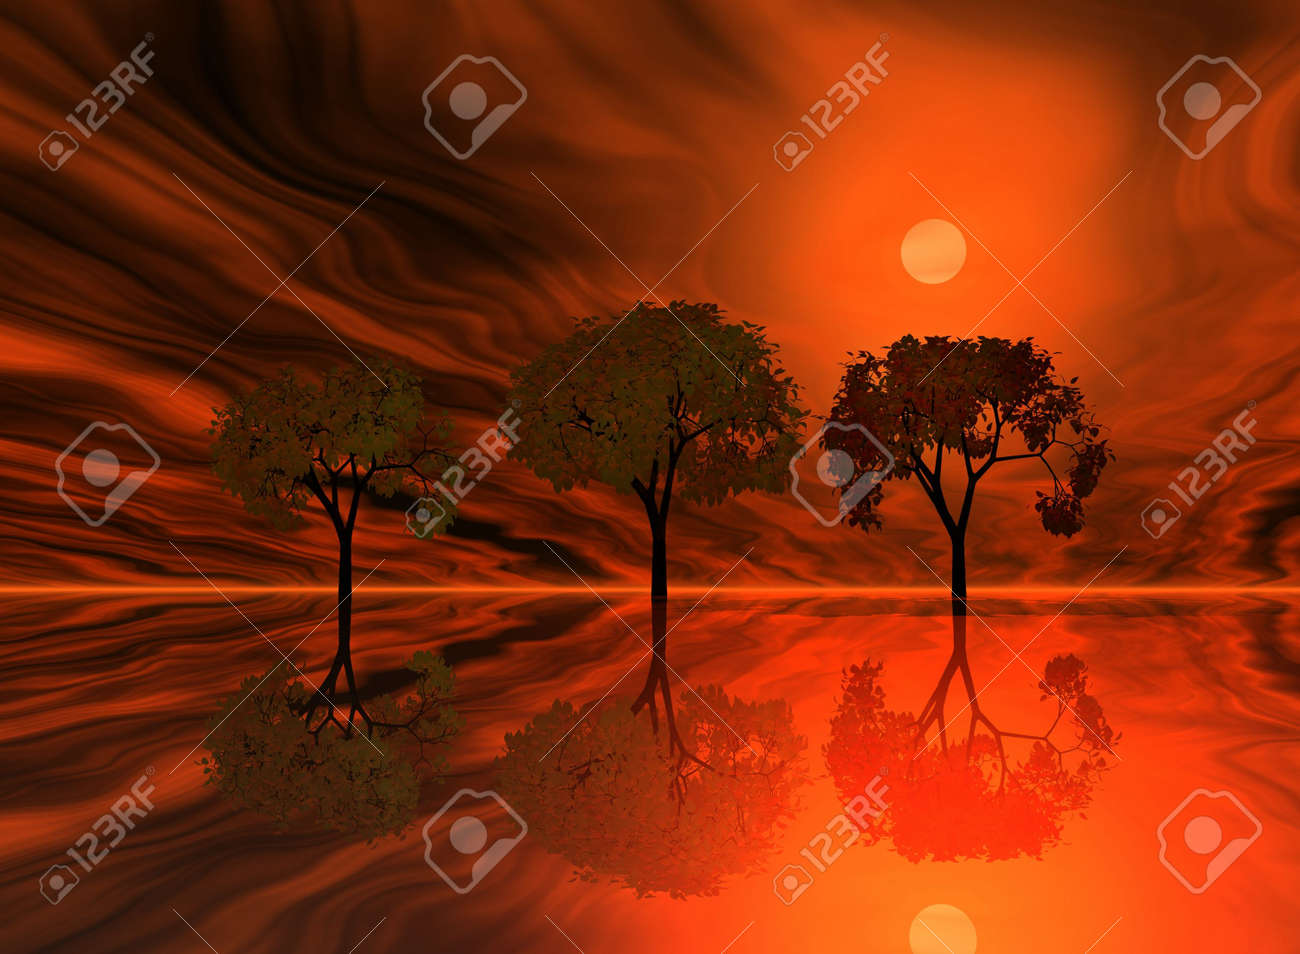 Red sunset. Abstraction landscape with trees and ocean. Stock Photo - 710429